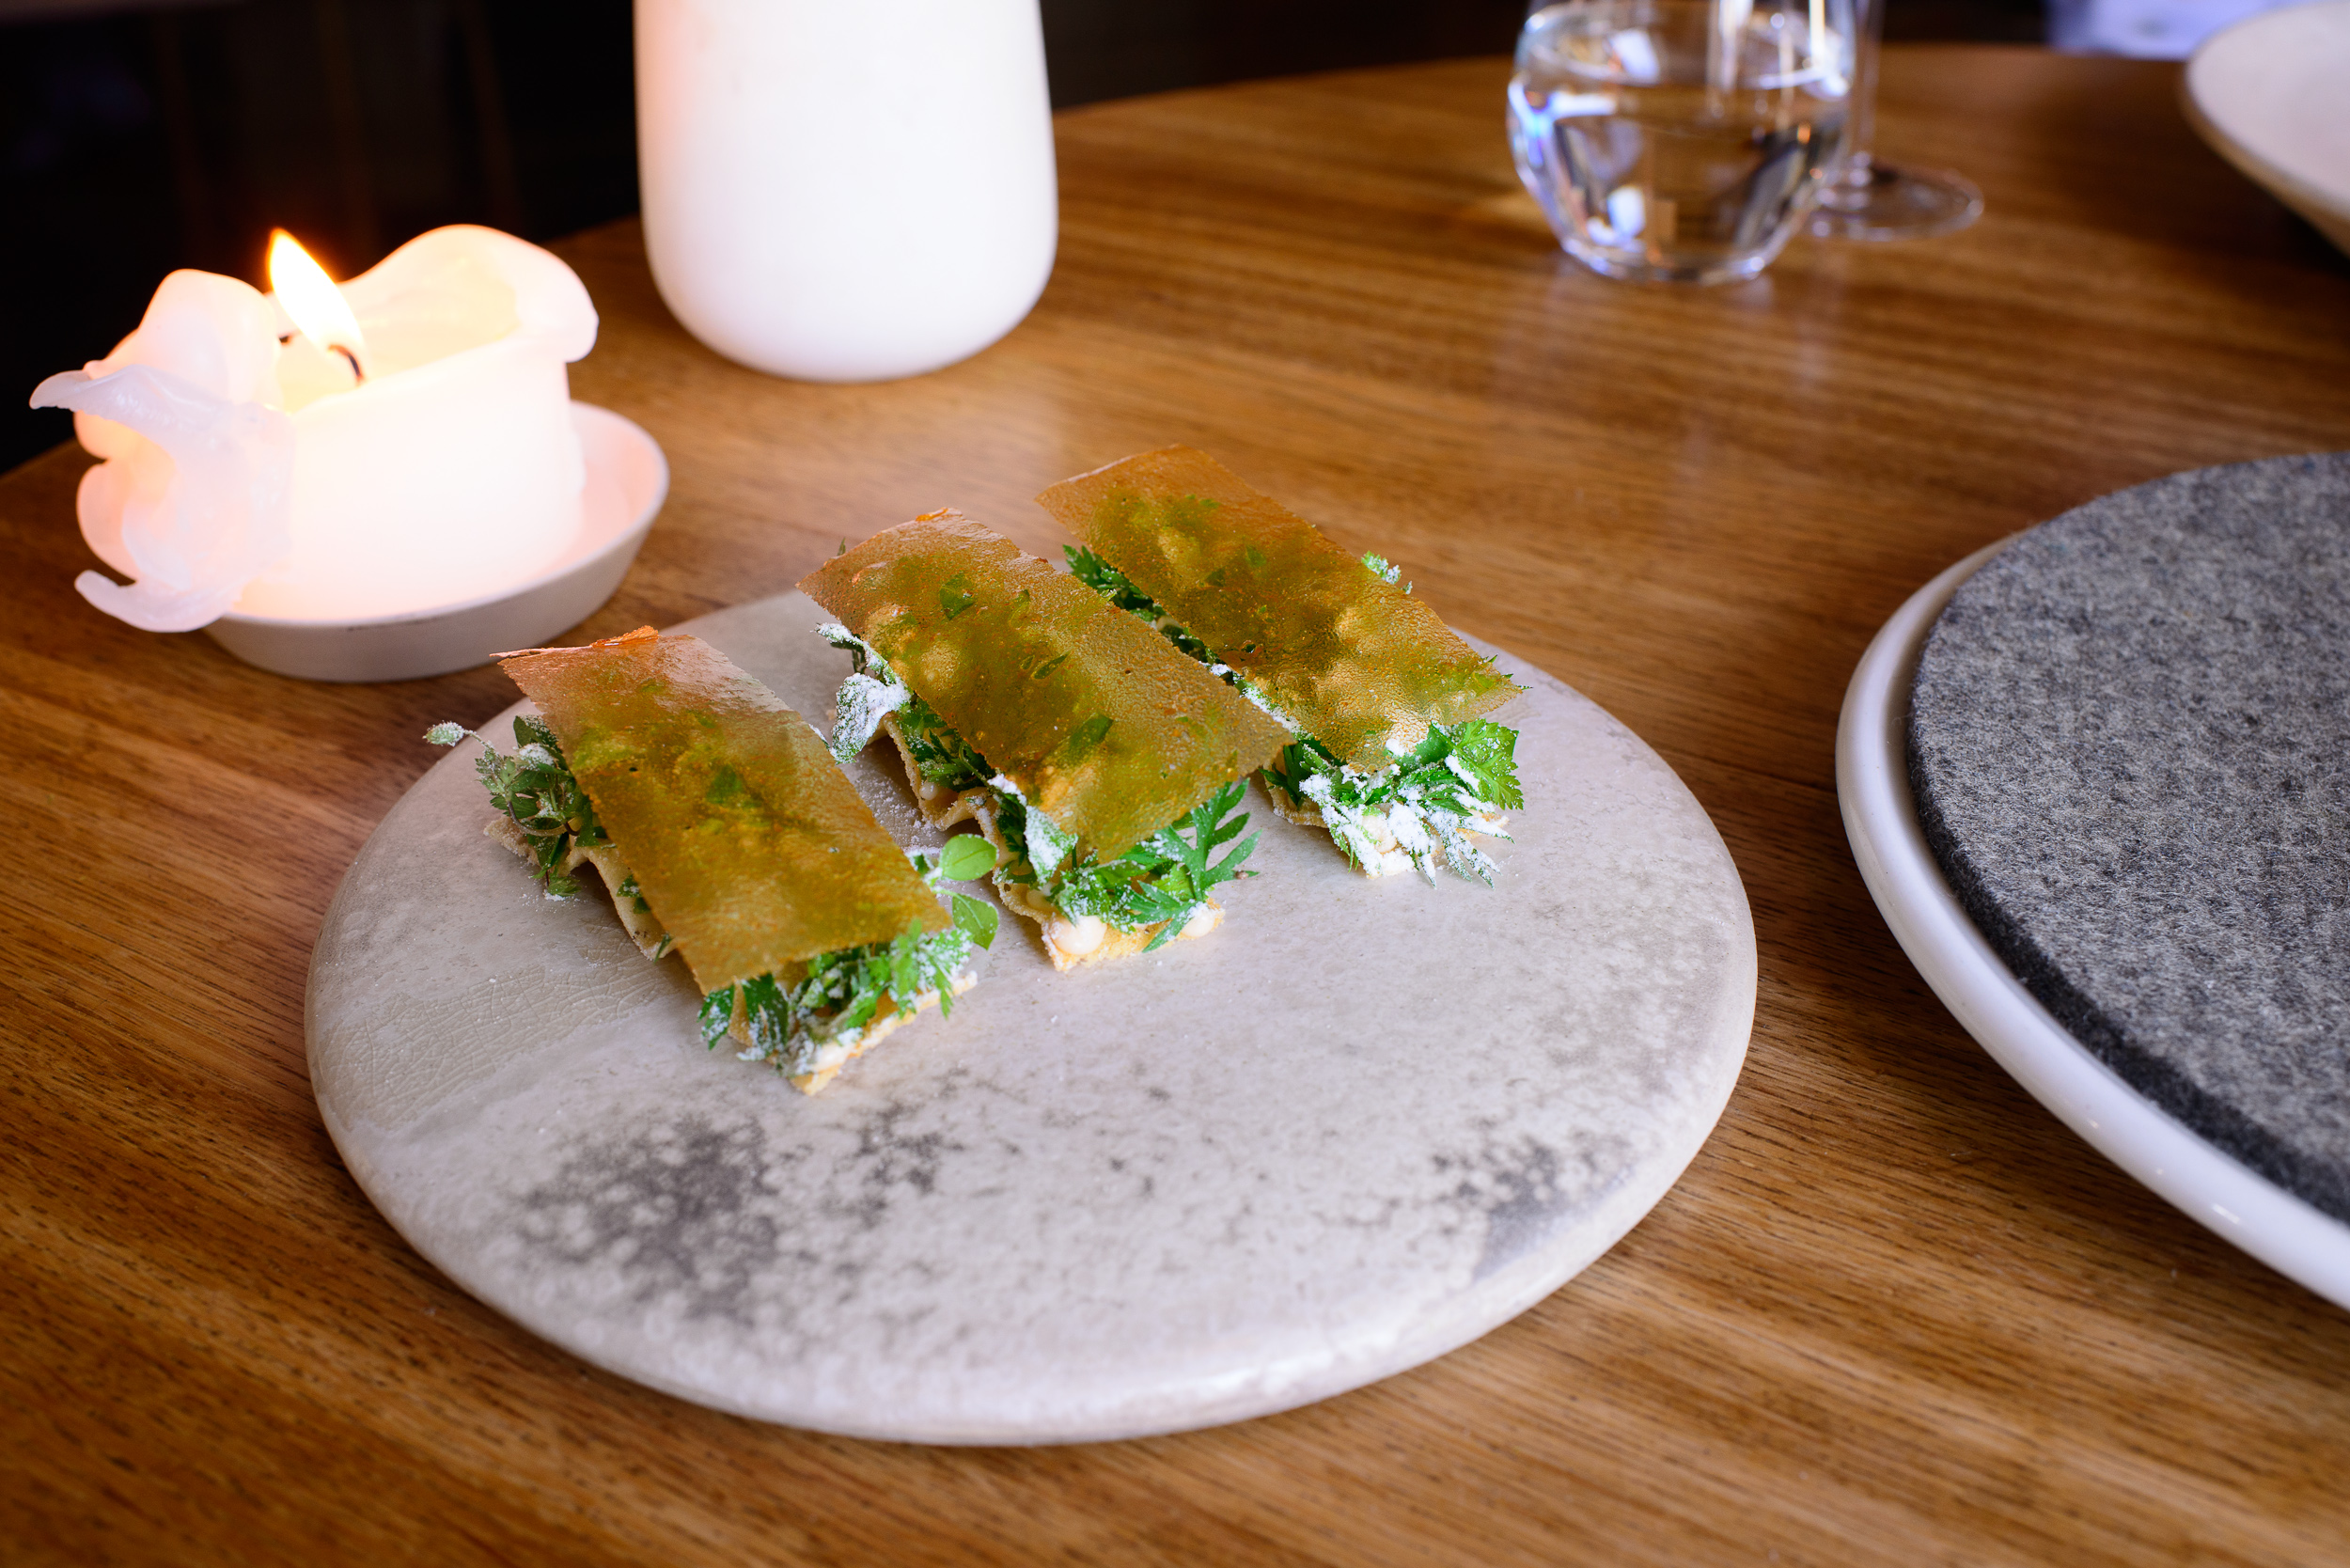 15th Course: Herb toast and smoked cod roe